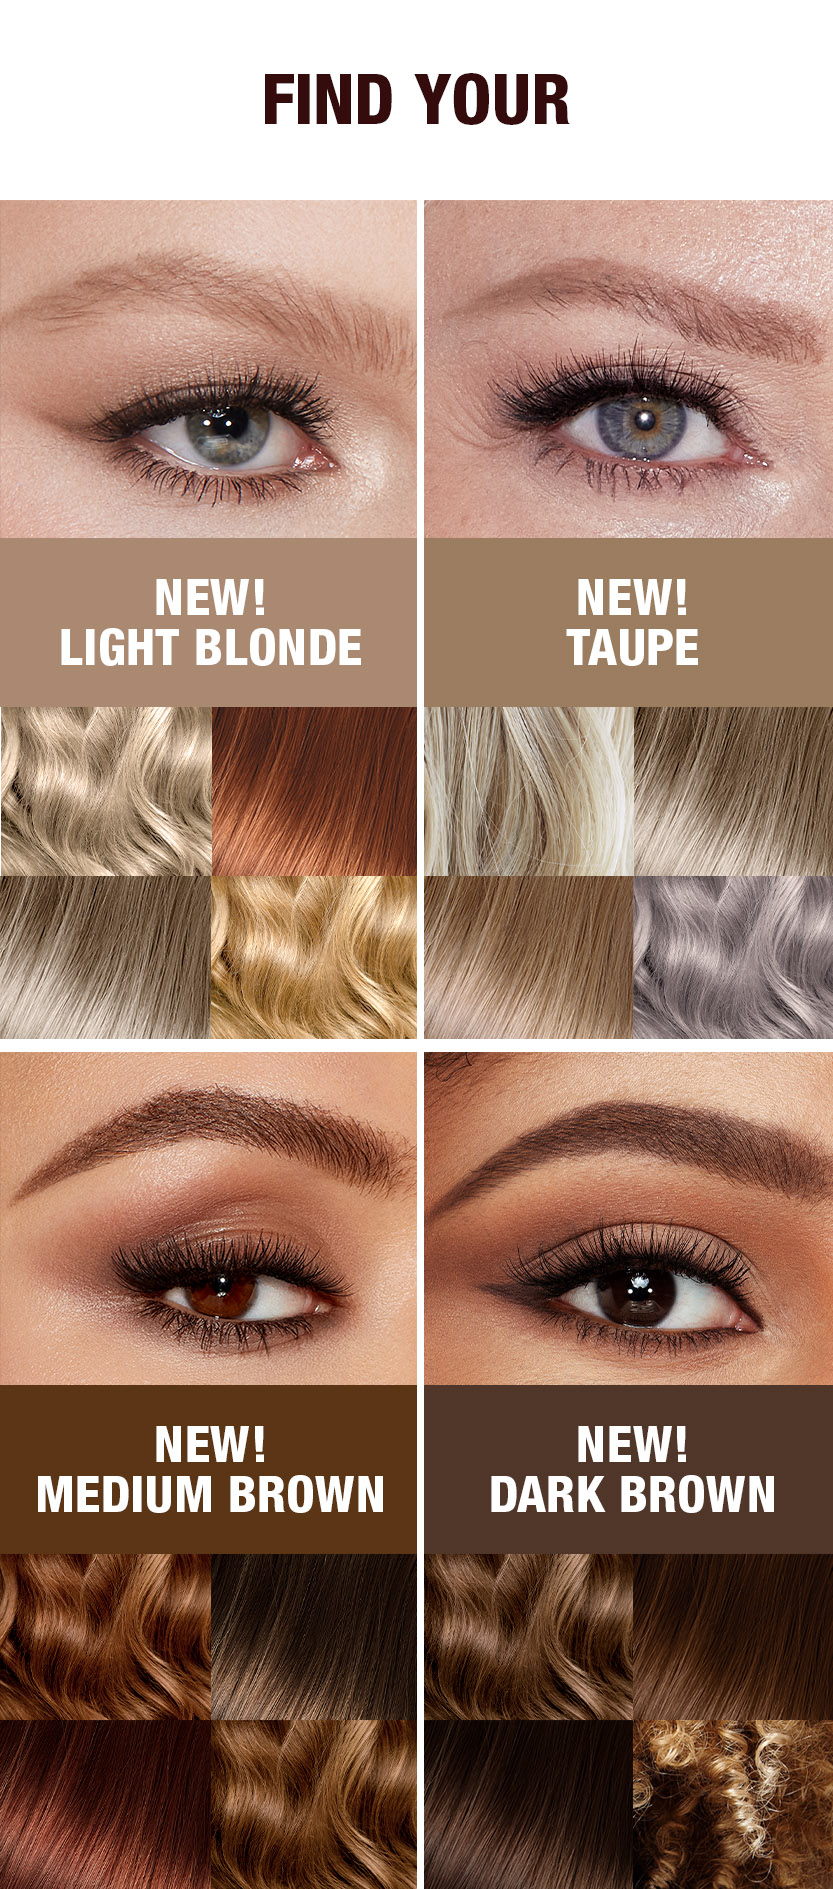 Hair Colour and Brow Product shades to match to